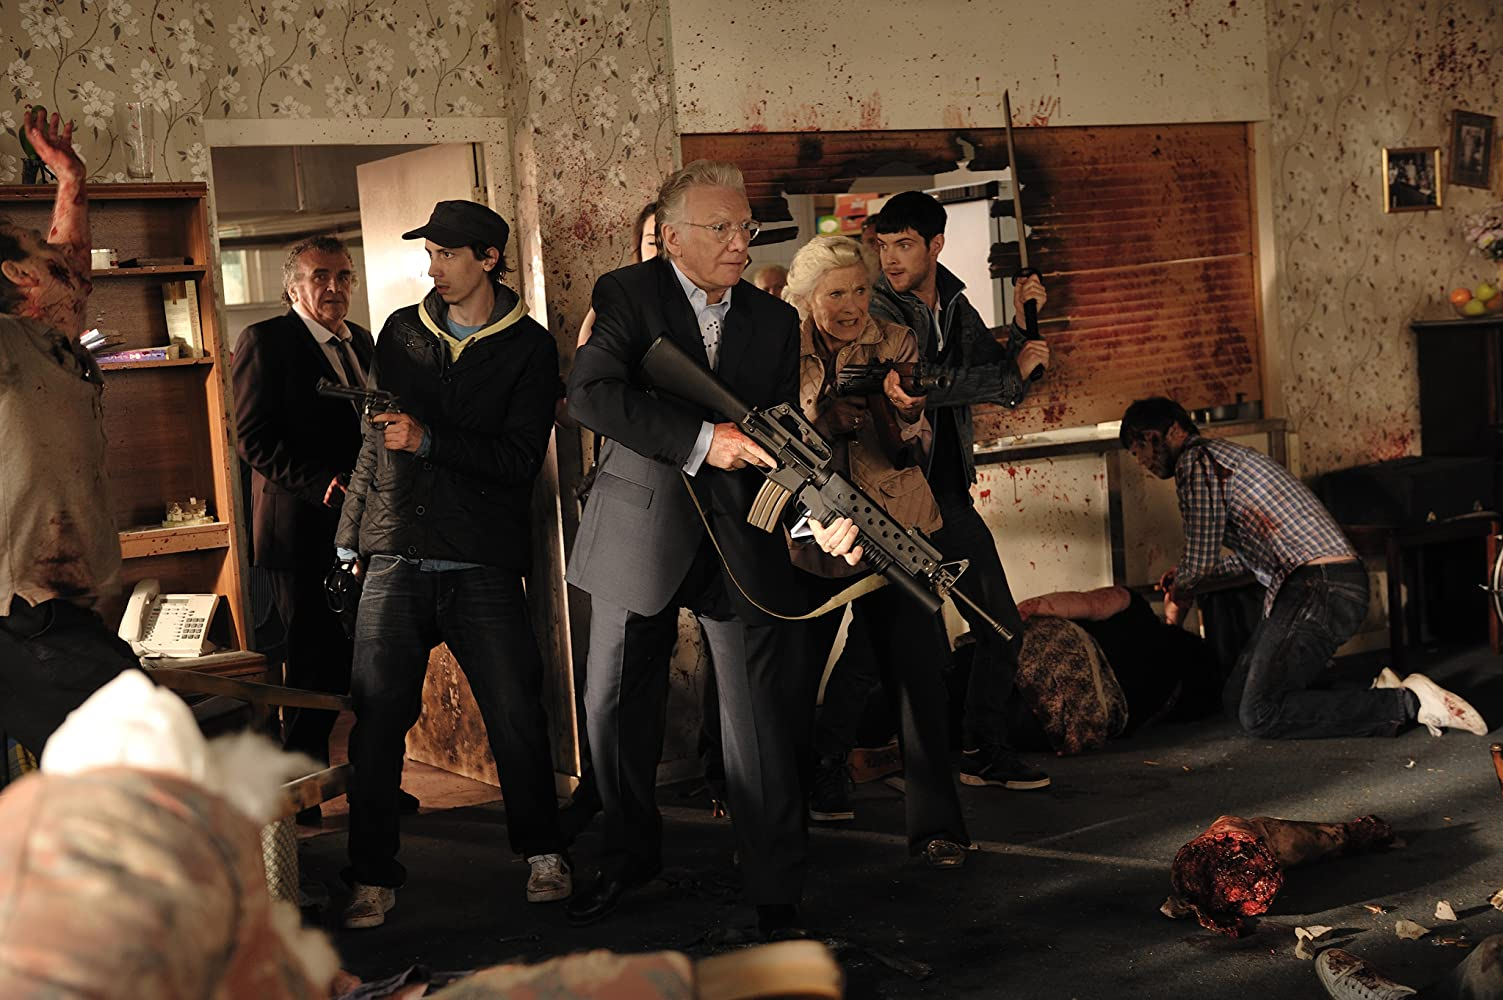 Honor Blackman, Alan Ford, Tony Selby, Rasmus Hardiker, and Harry Treadaway in Cockneys vs Zombies (2012)